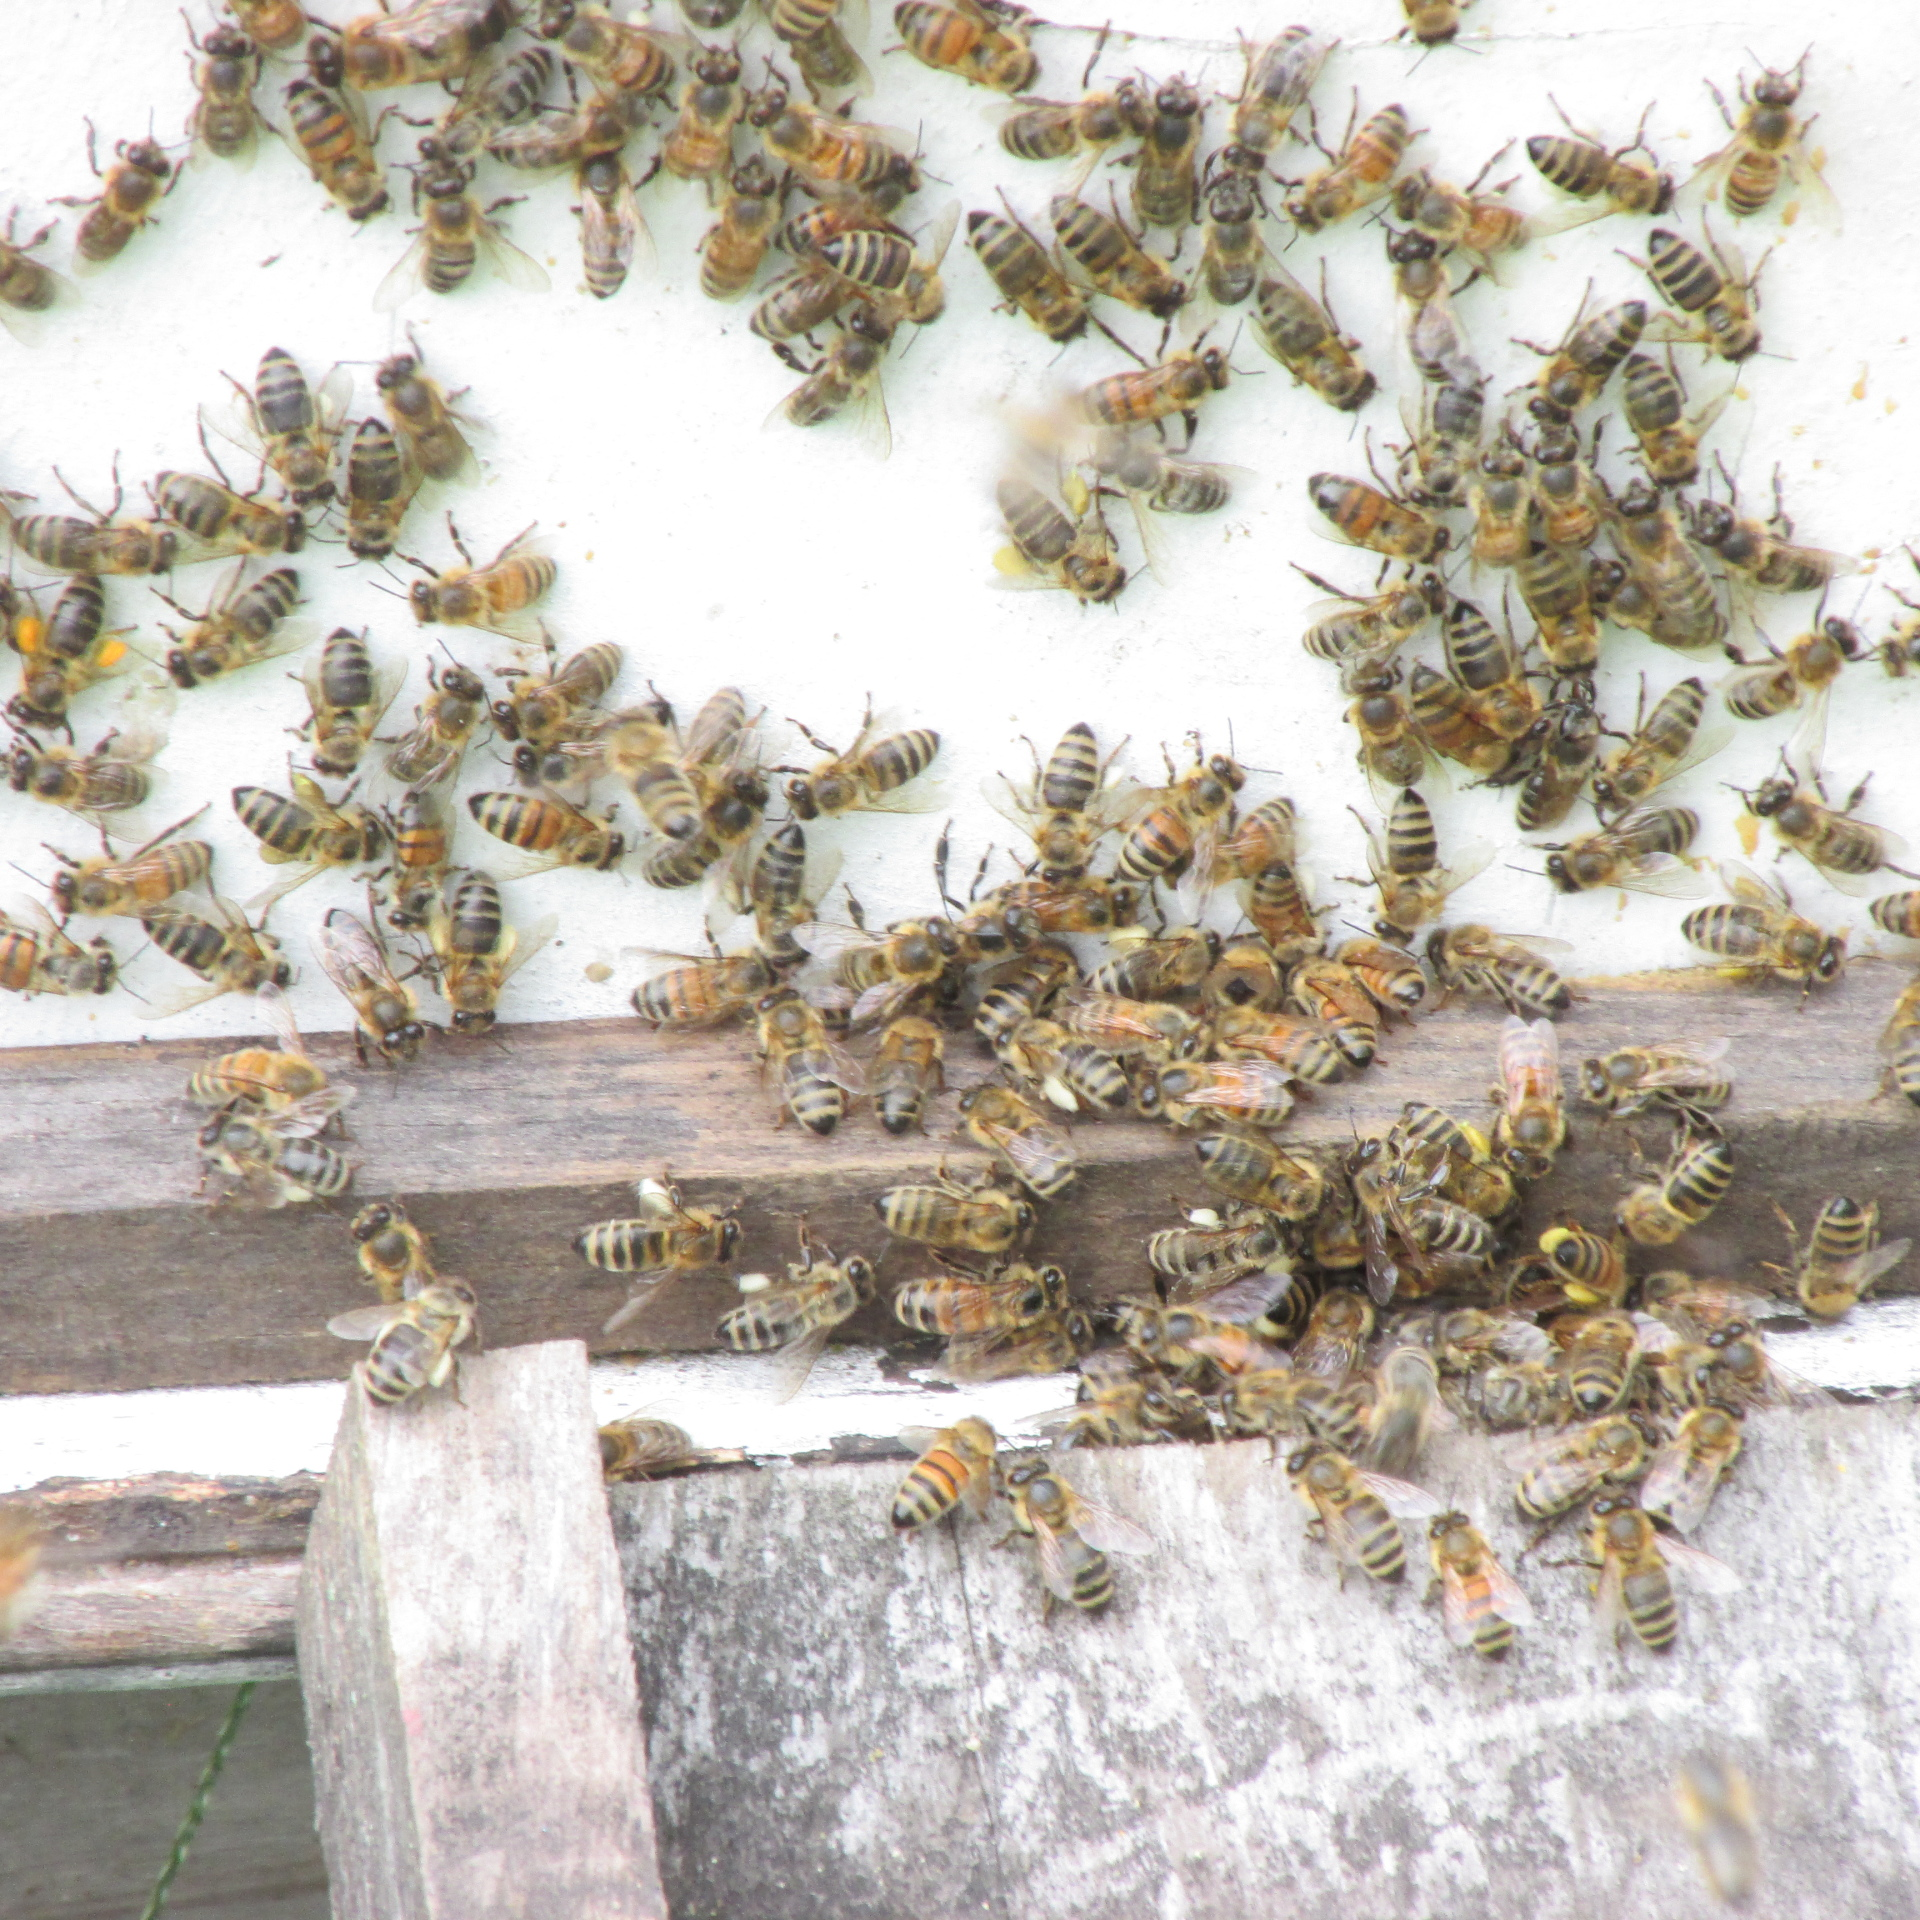 Bees with Entrance Reducer